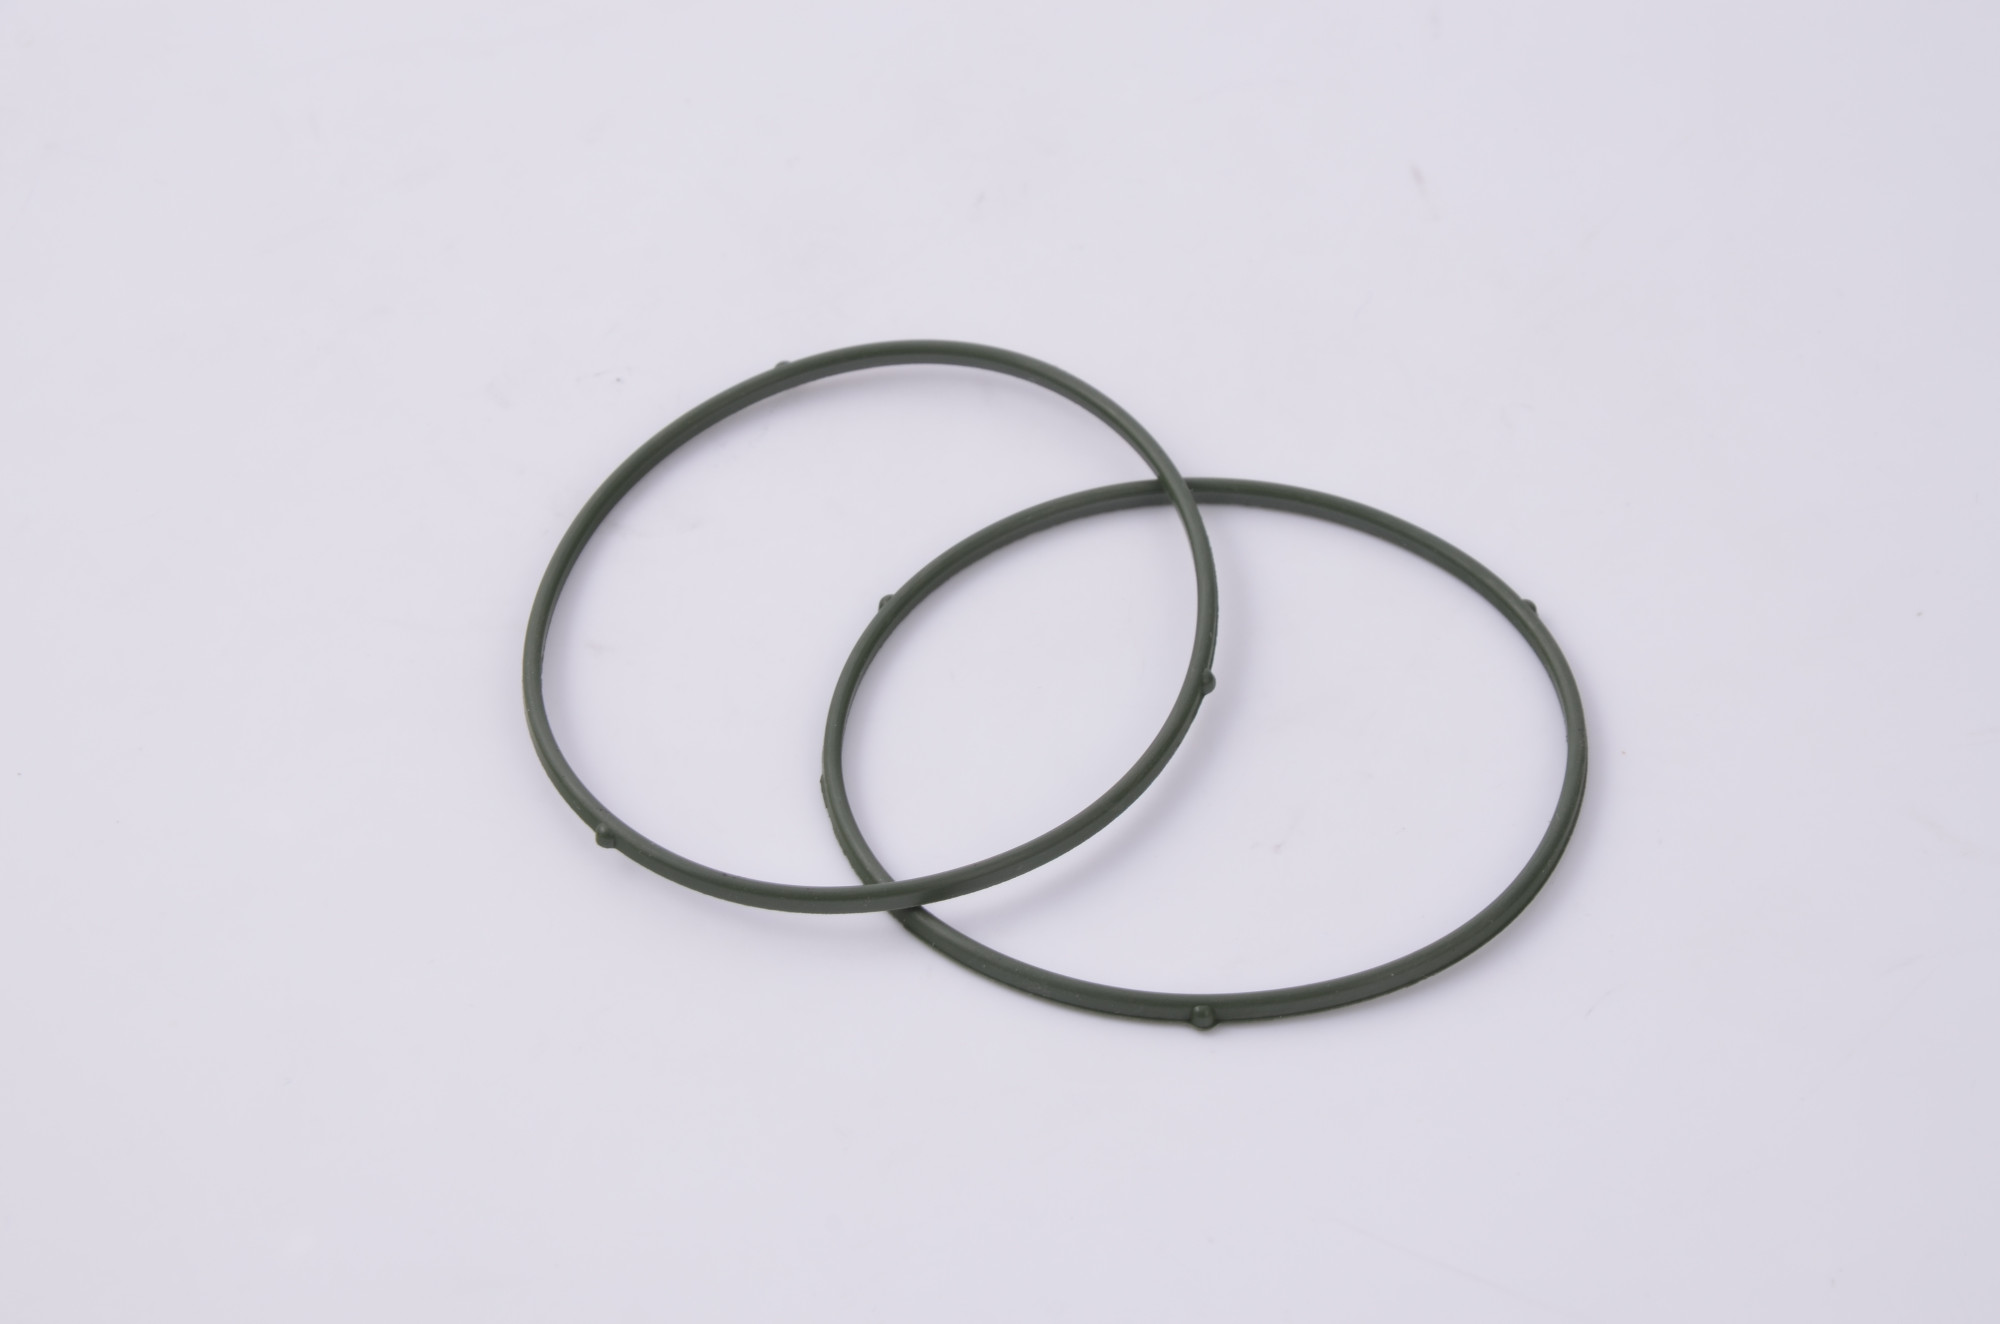 Rubber Seal ring Manufacturers, Rubber Seal ring Factory, Rubber Seal ring